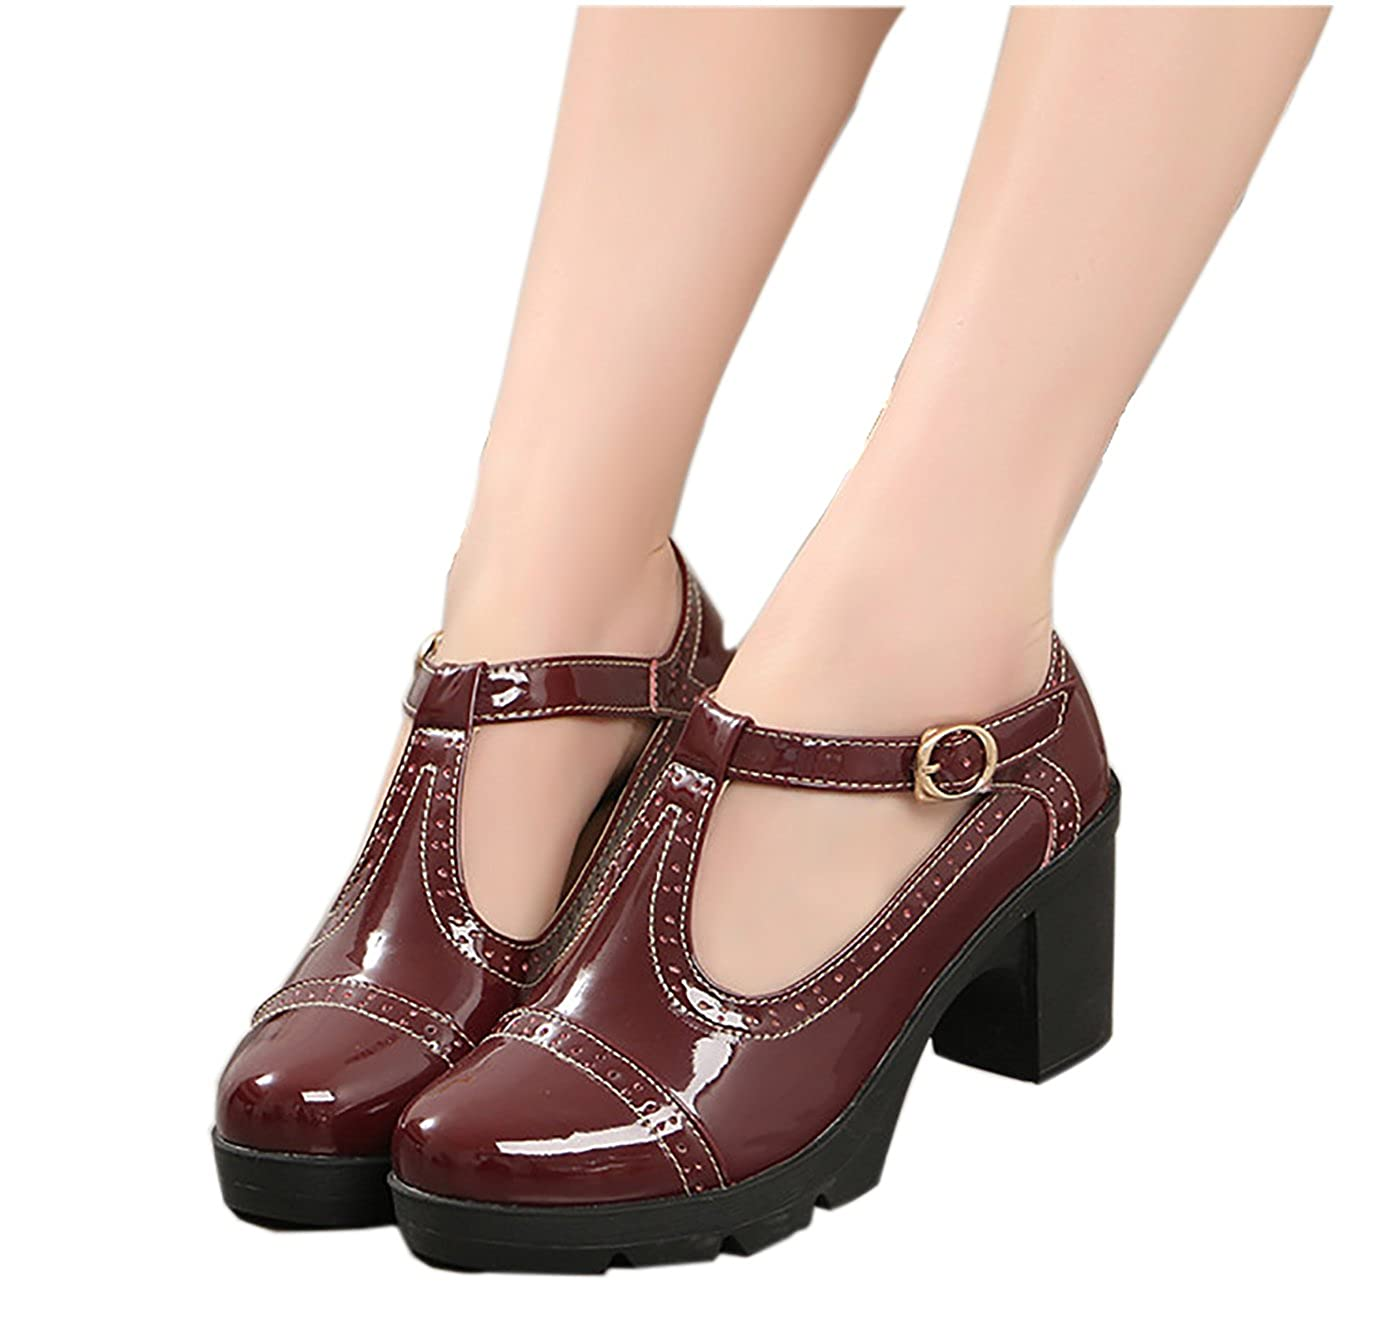 XIPAI Women's T-Strap Platform Shoes Mid-Heel Vintage Oxfords Dress Shoes